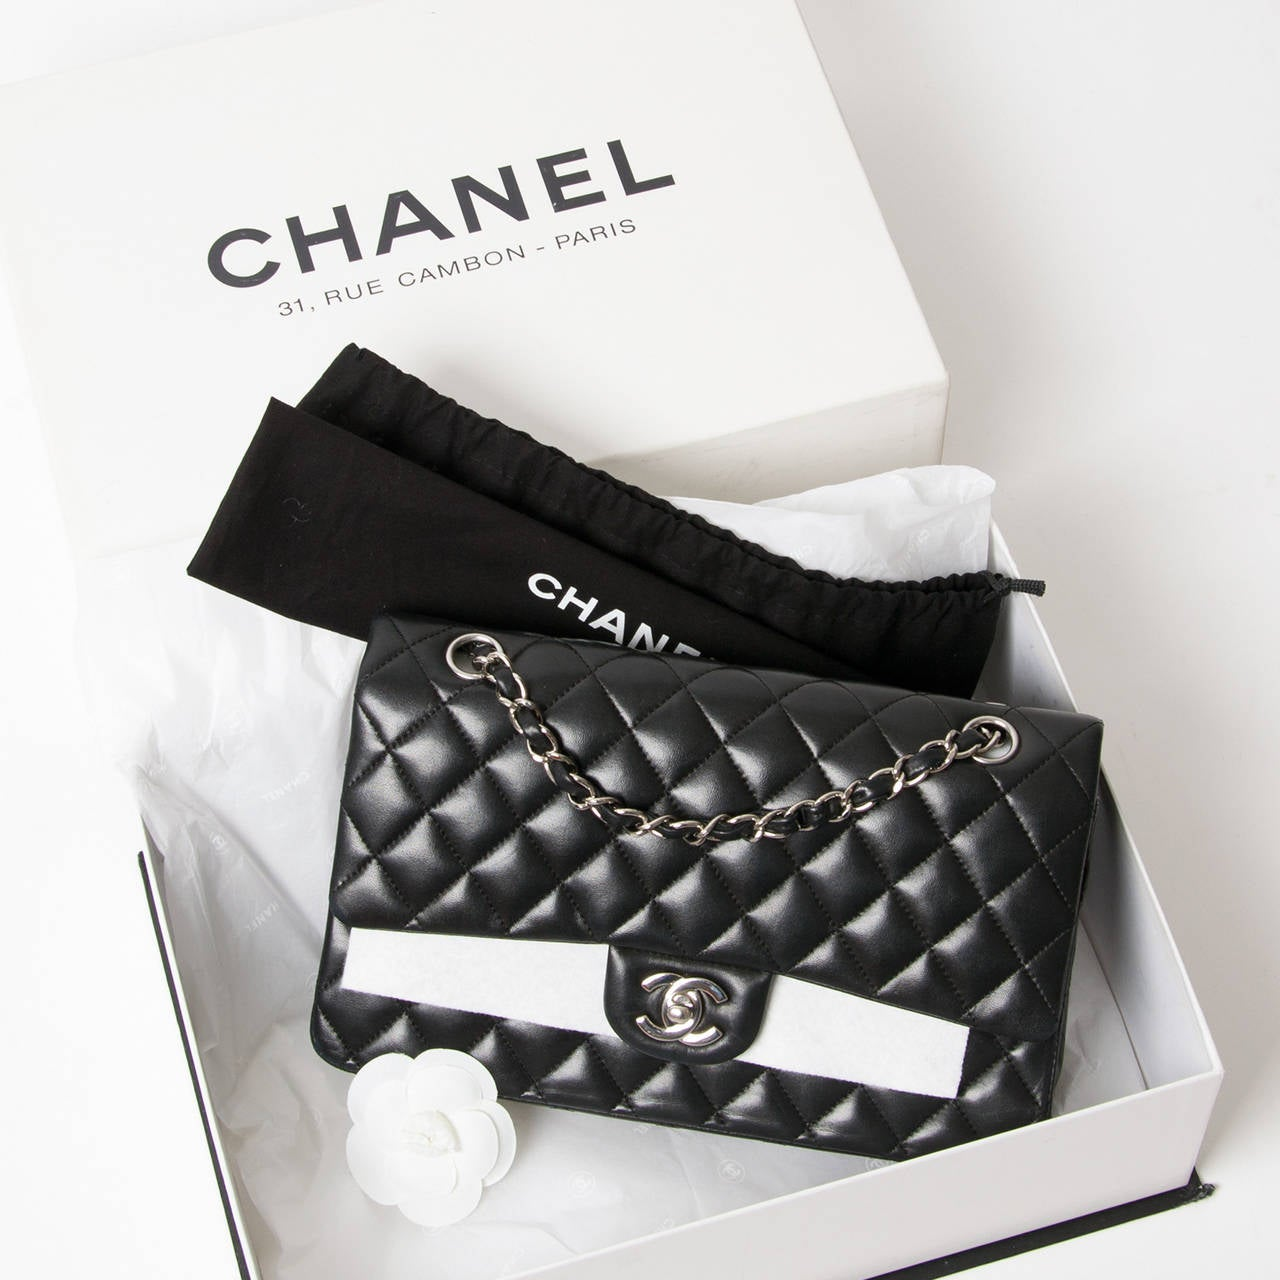 c289f9fa2588 Chanel Black Lambskin Medium Classic Flap Bag This iconic bag is considered  to be one of